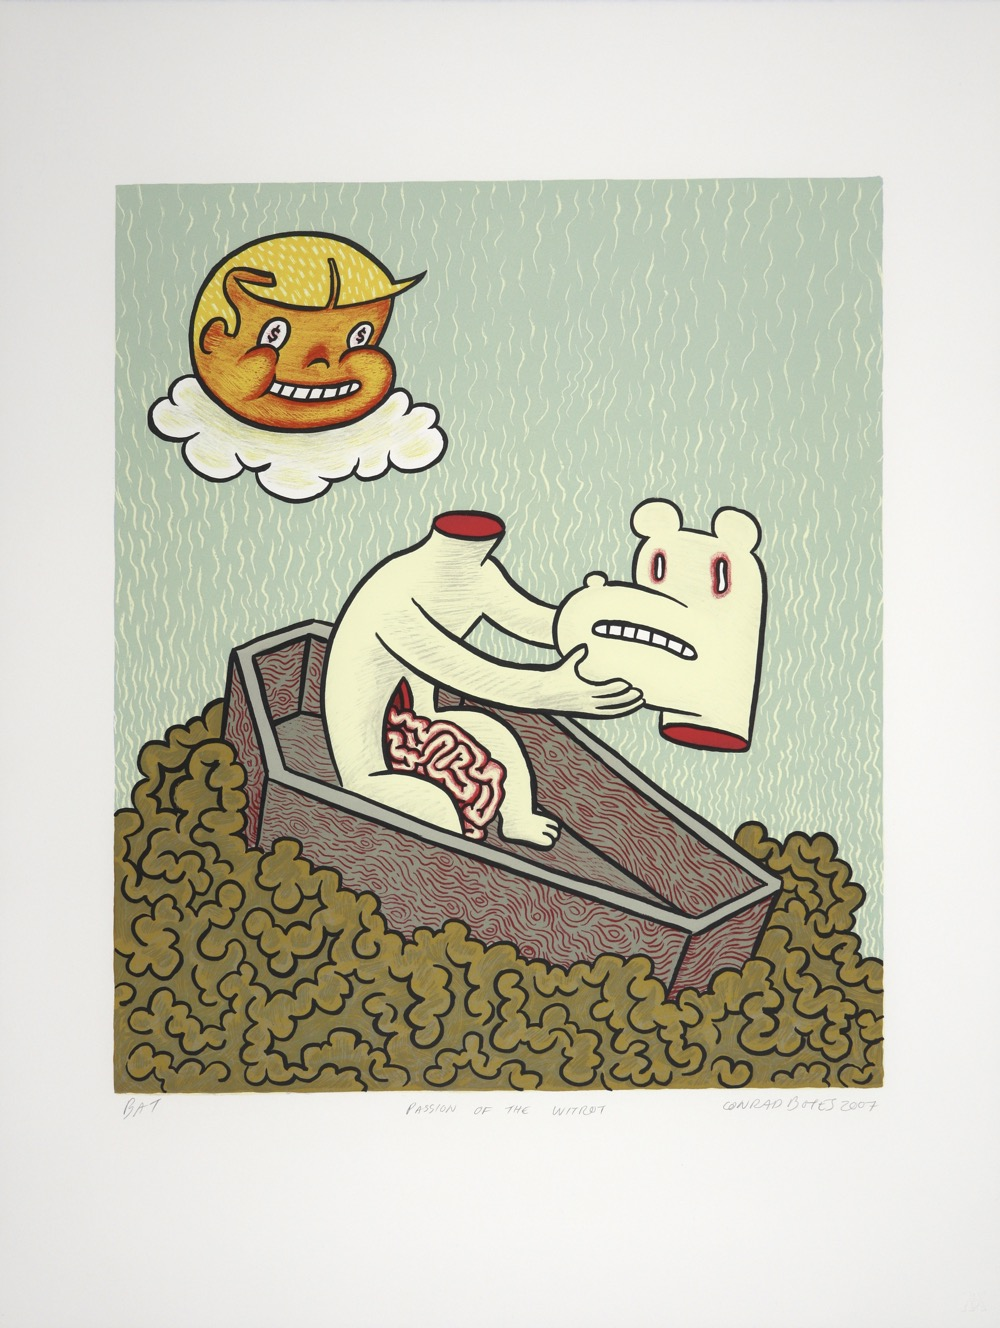 Coffin floating on entrails with dog figure removing its head with smiling boys head floating on cloud.